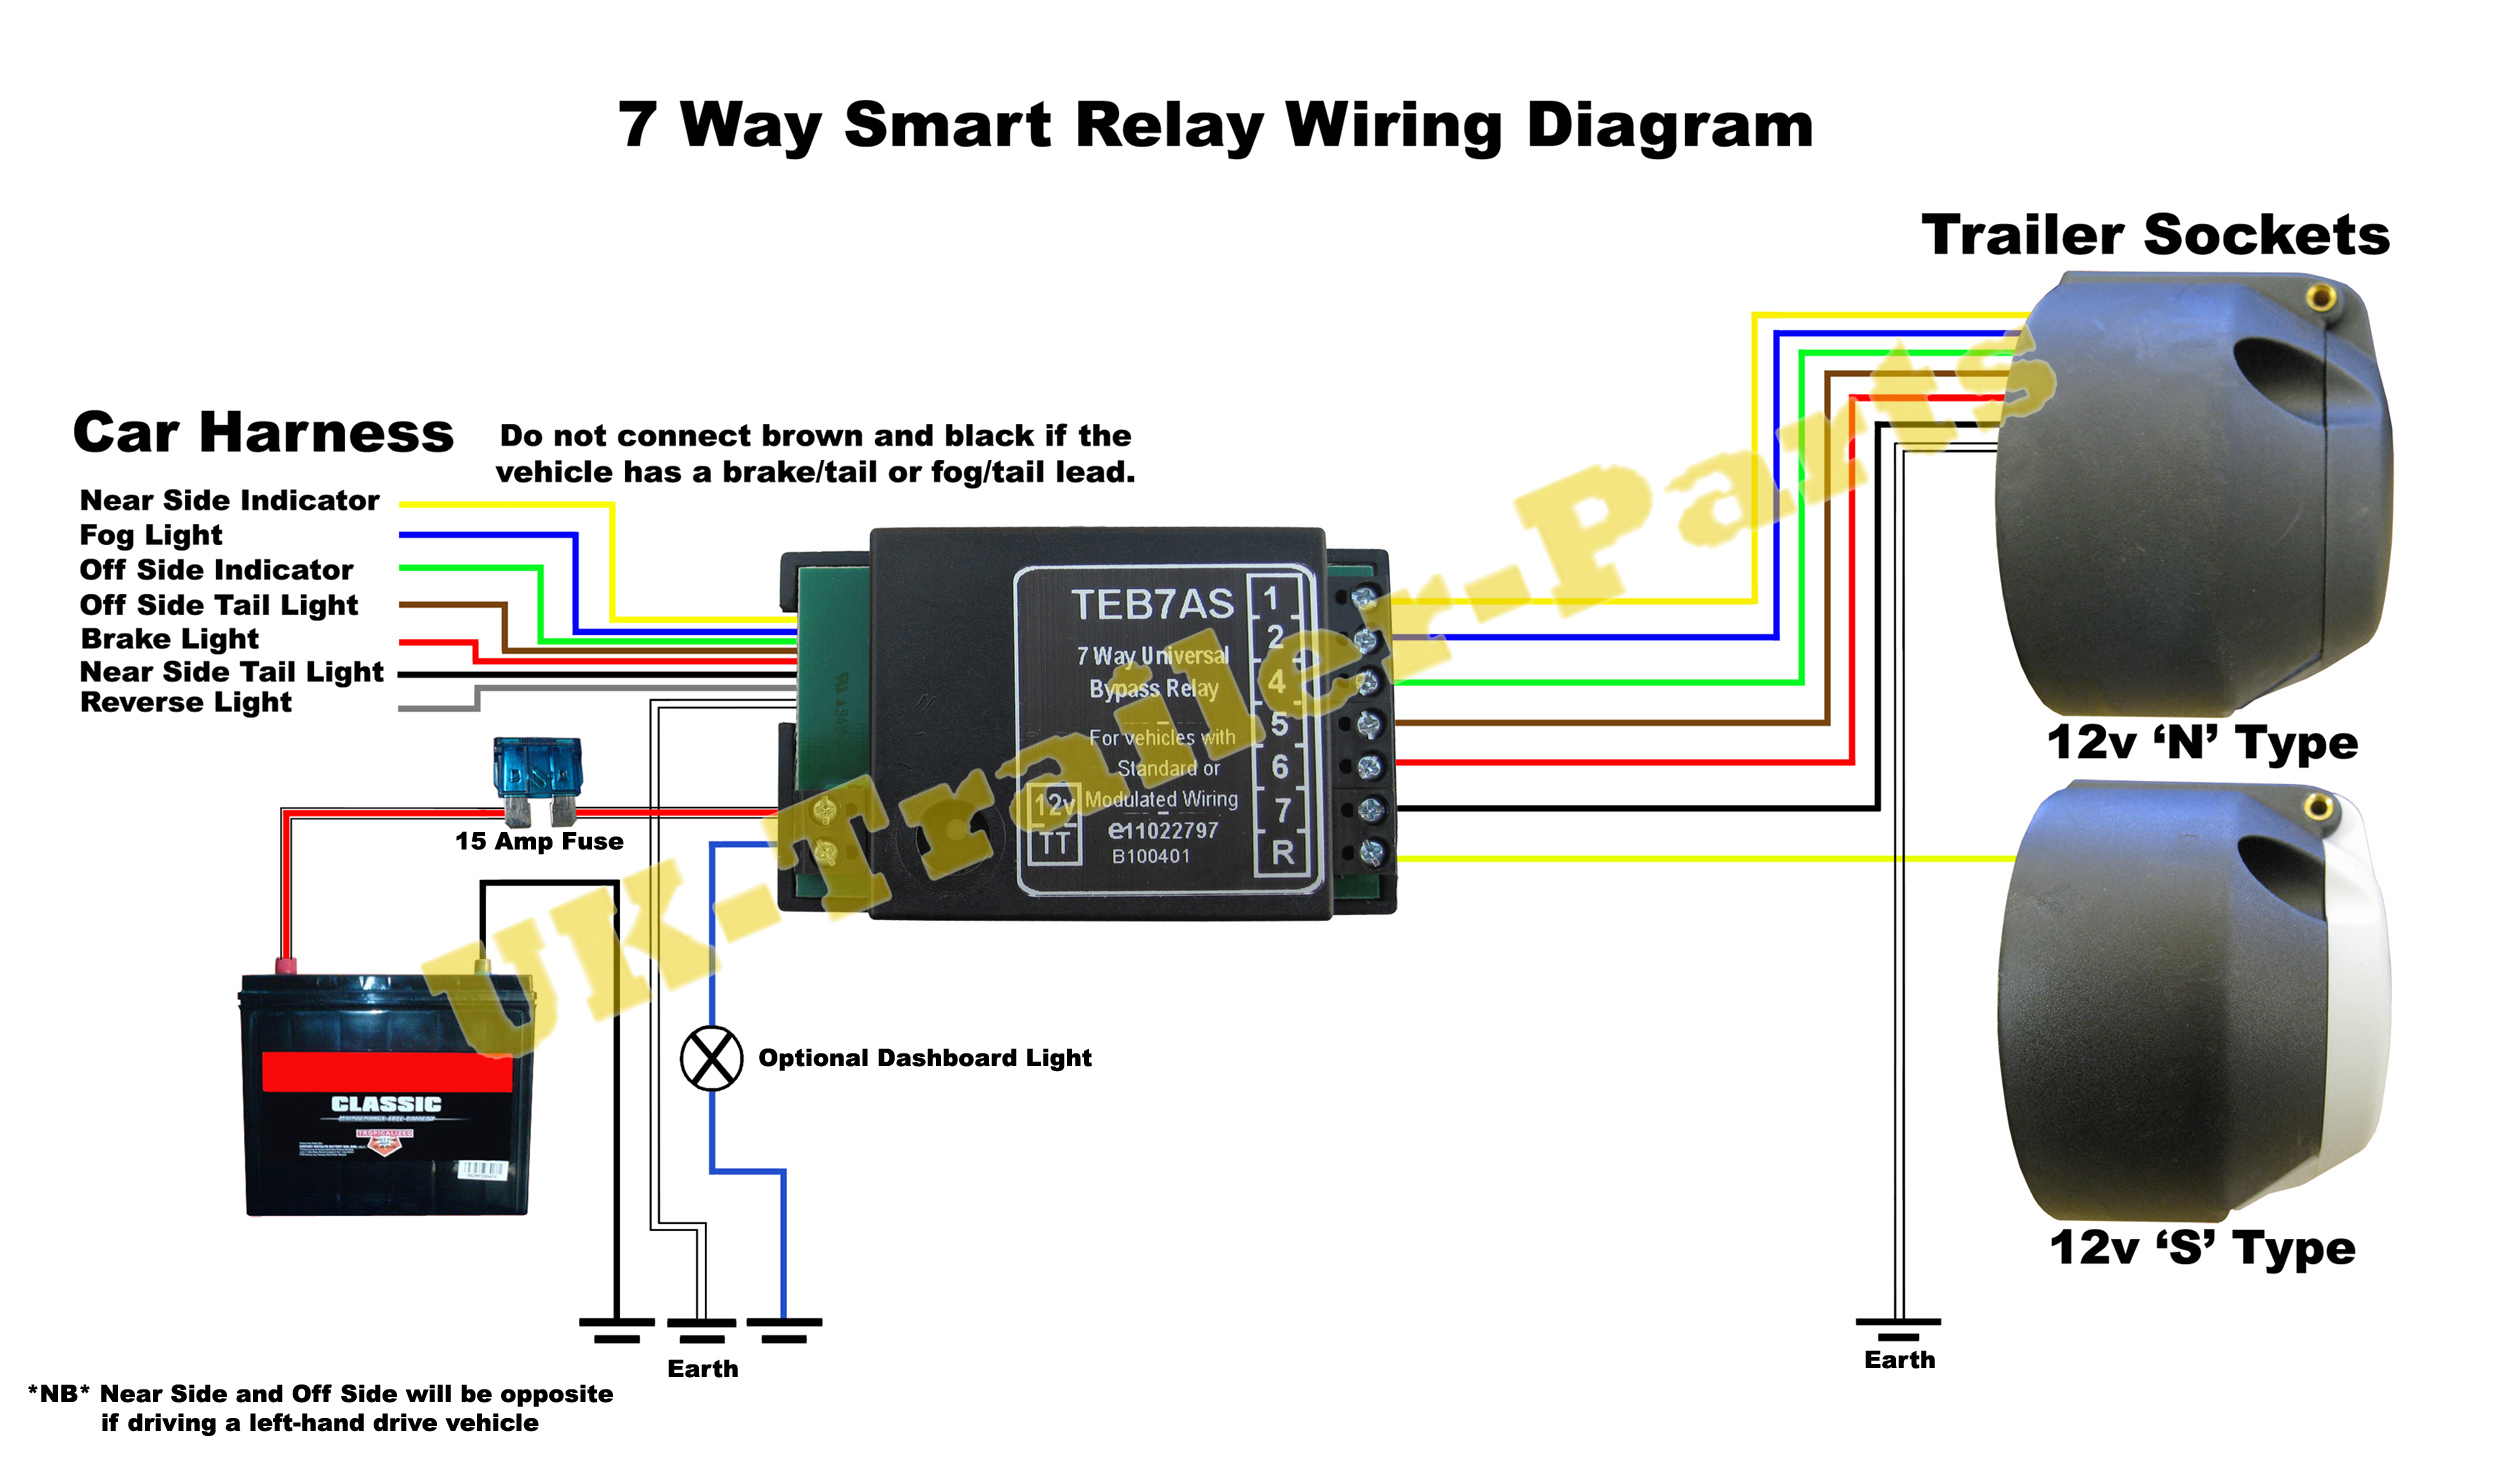 smart relay wiring diagram2 7 way universal bypass relay wiring diagram uk trailer parts vectra c fog light wiring diagram at beritabola.co